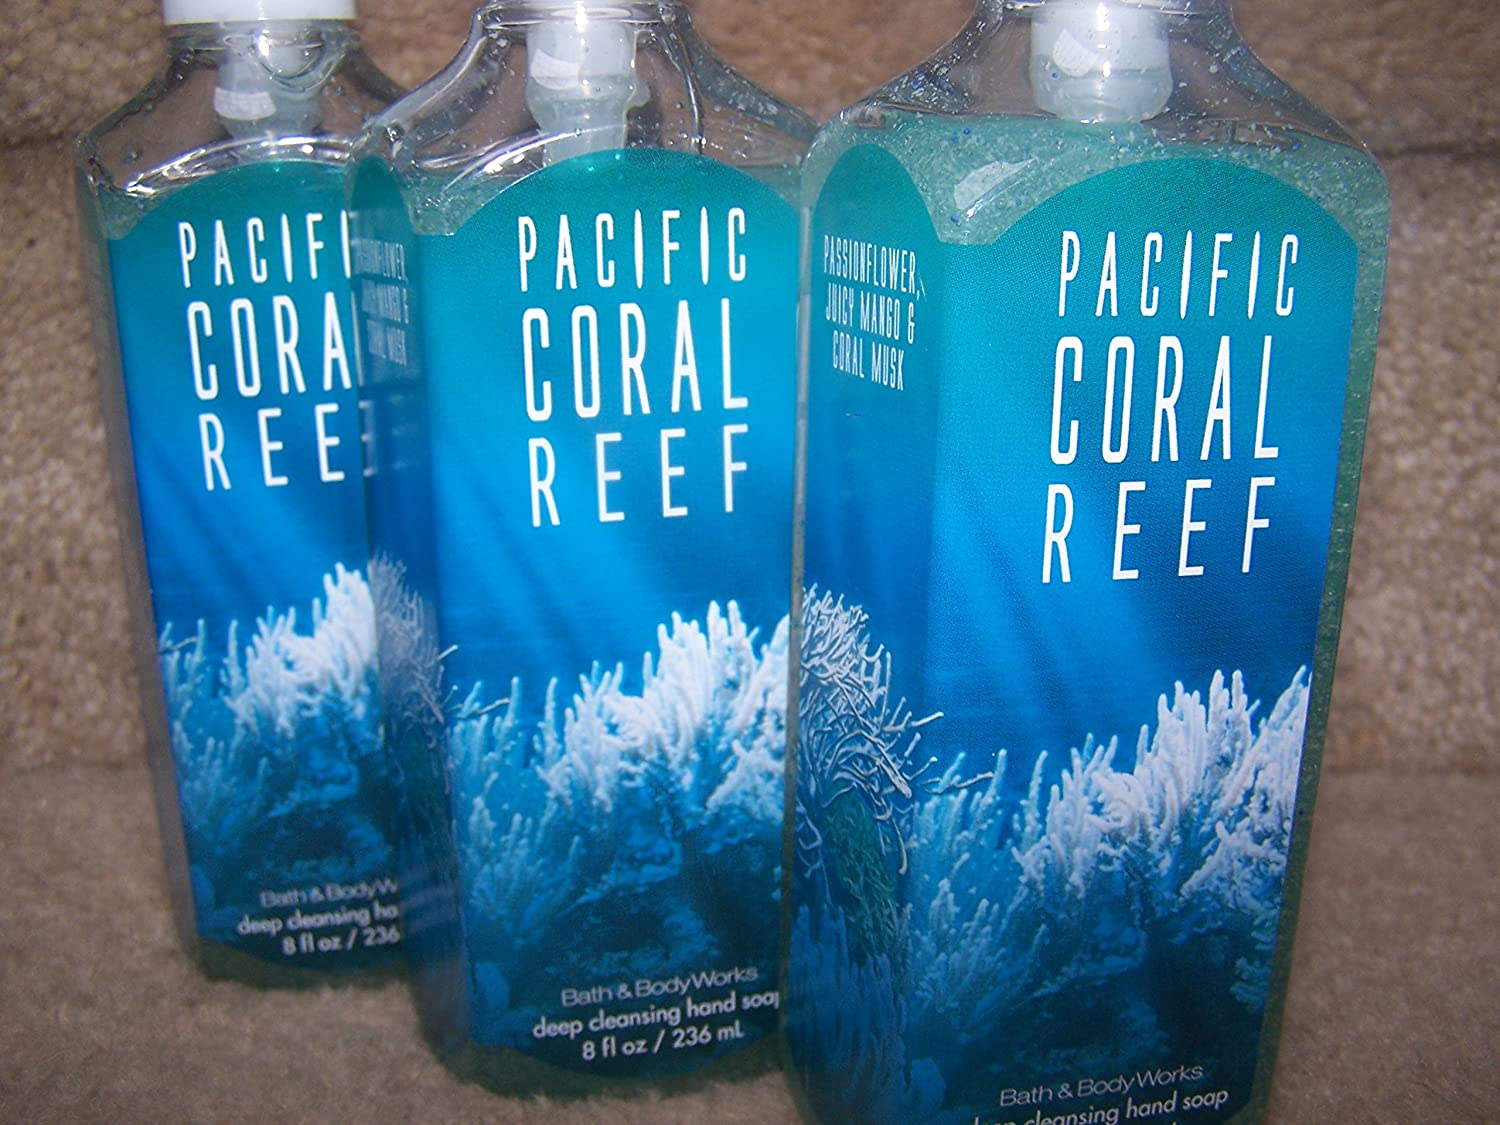 Amazon.com : Lot of 3 Bath & Body Works Pacific Coral Reef Deep ...